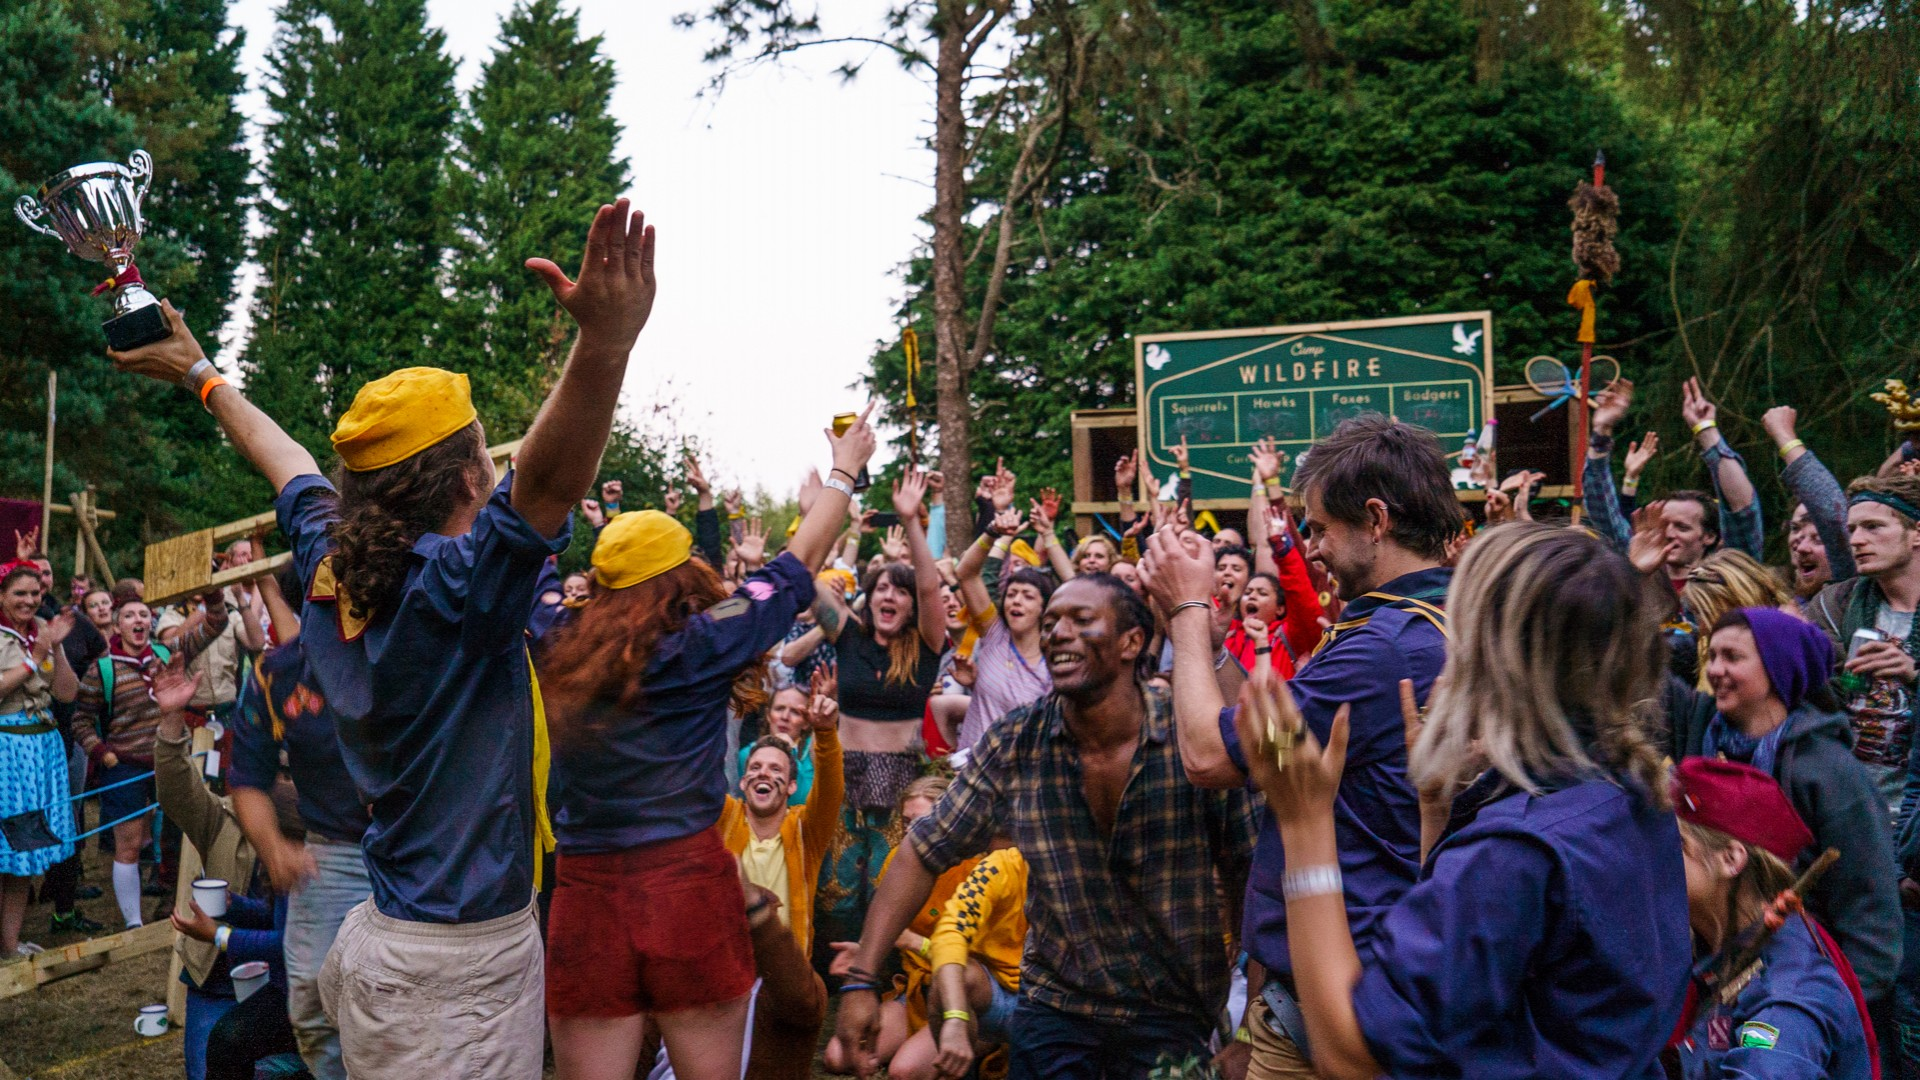 The victory ceremony at Camp Wildfire